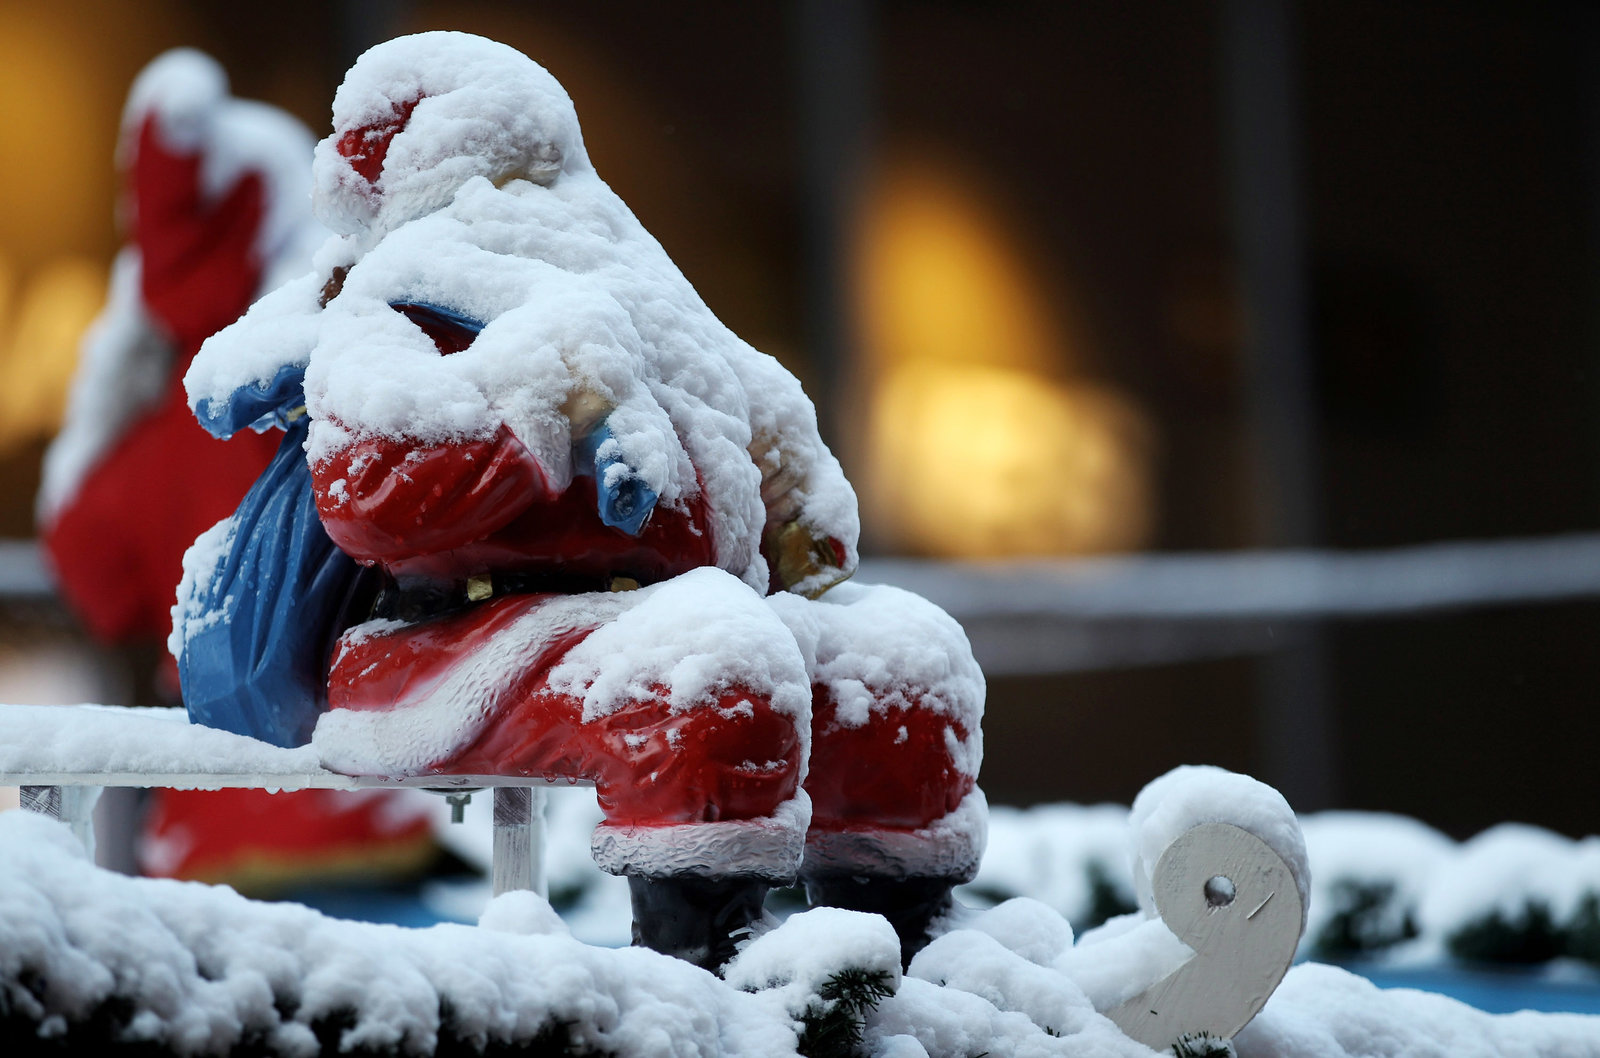 White Christmas in Germany used to be a foregone conclusion